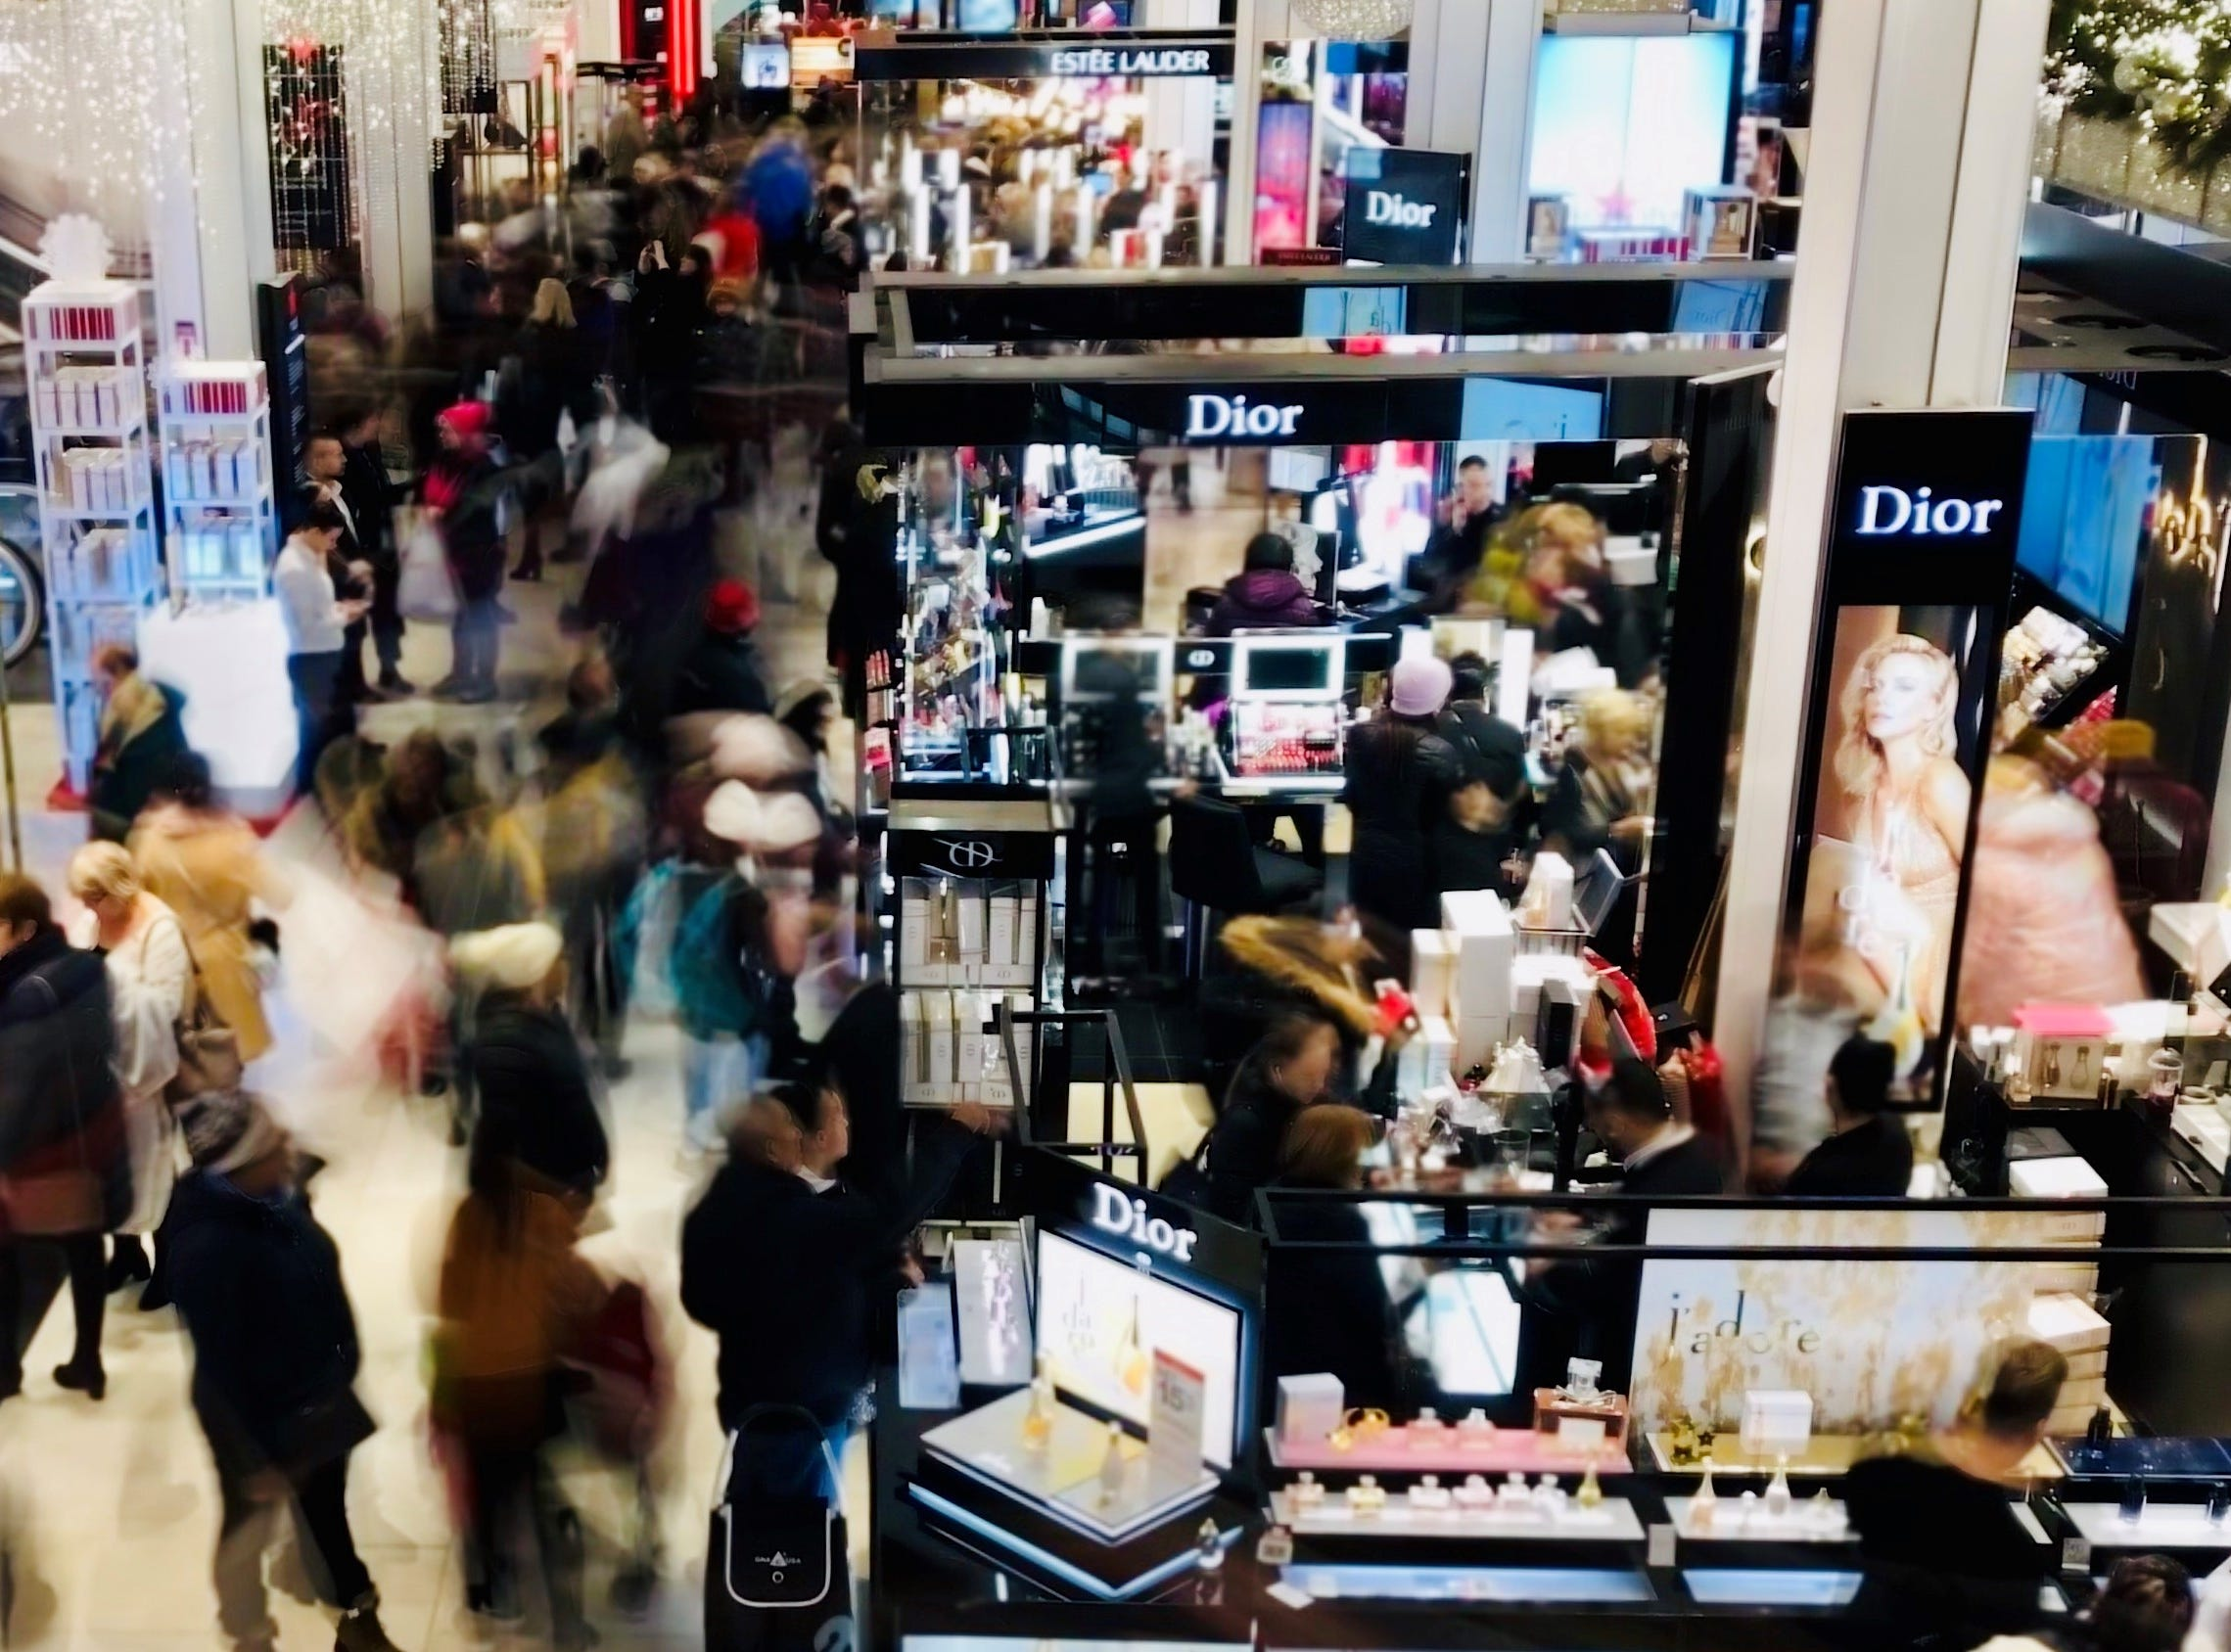 Bill Ramsey captured Christmas shoppers at Macy's on 34th St. during a recent trip to New York City on Dec. 8, 2018.